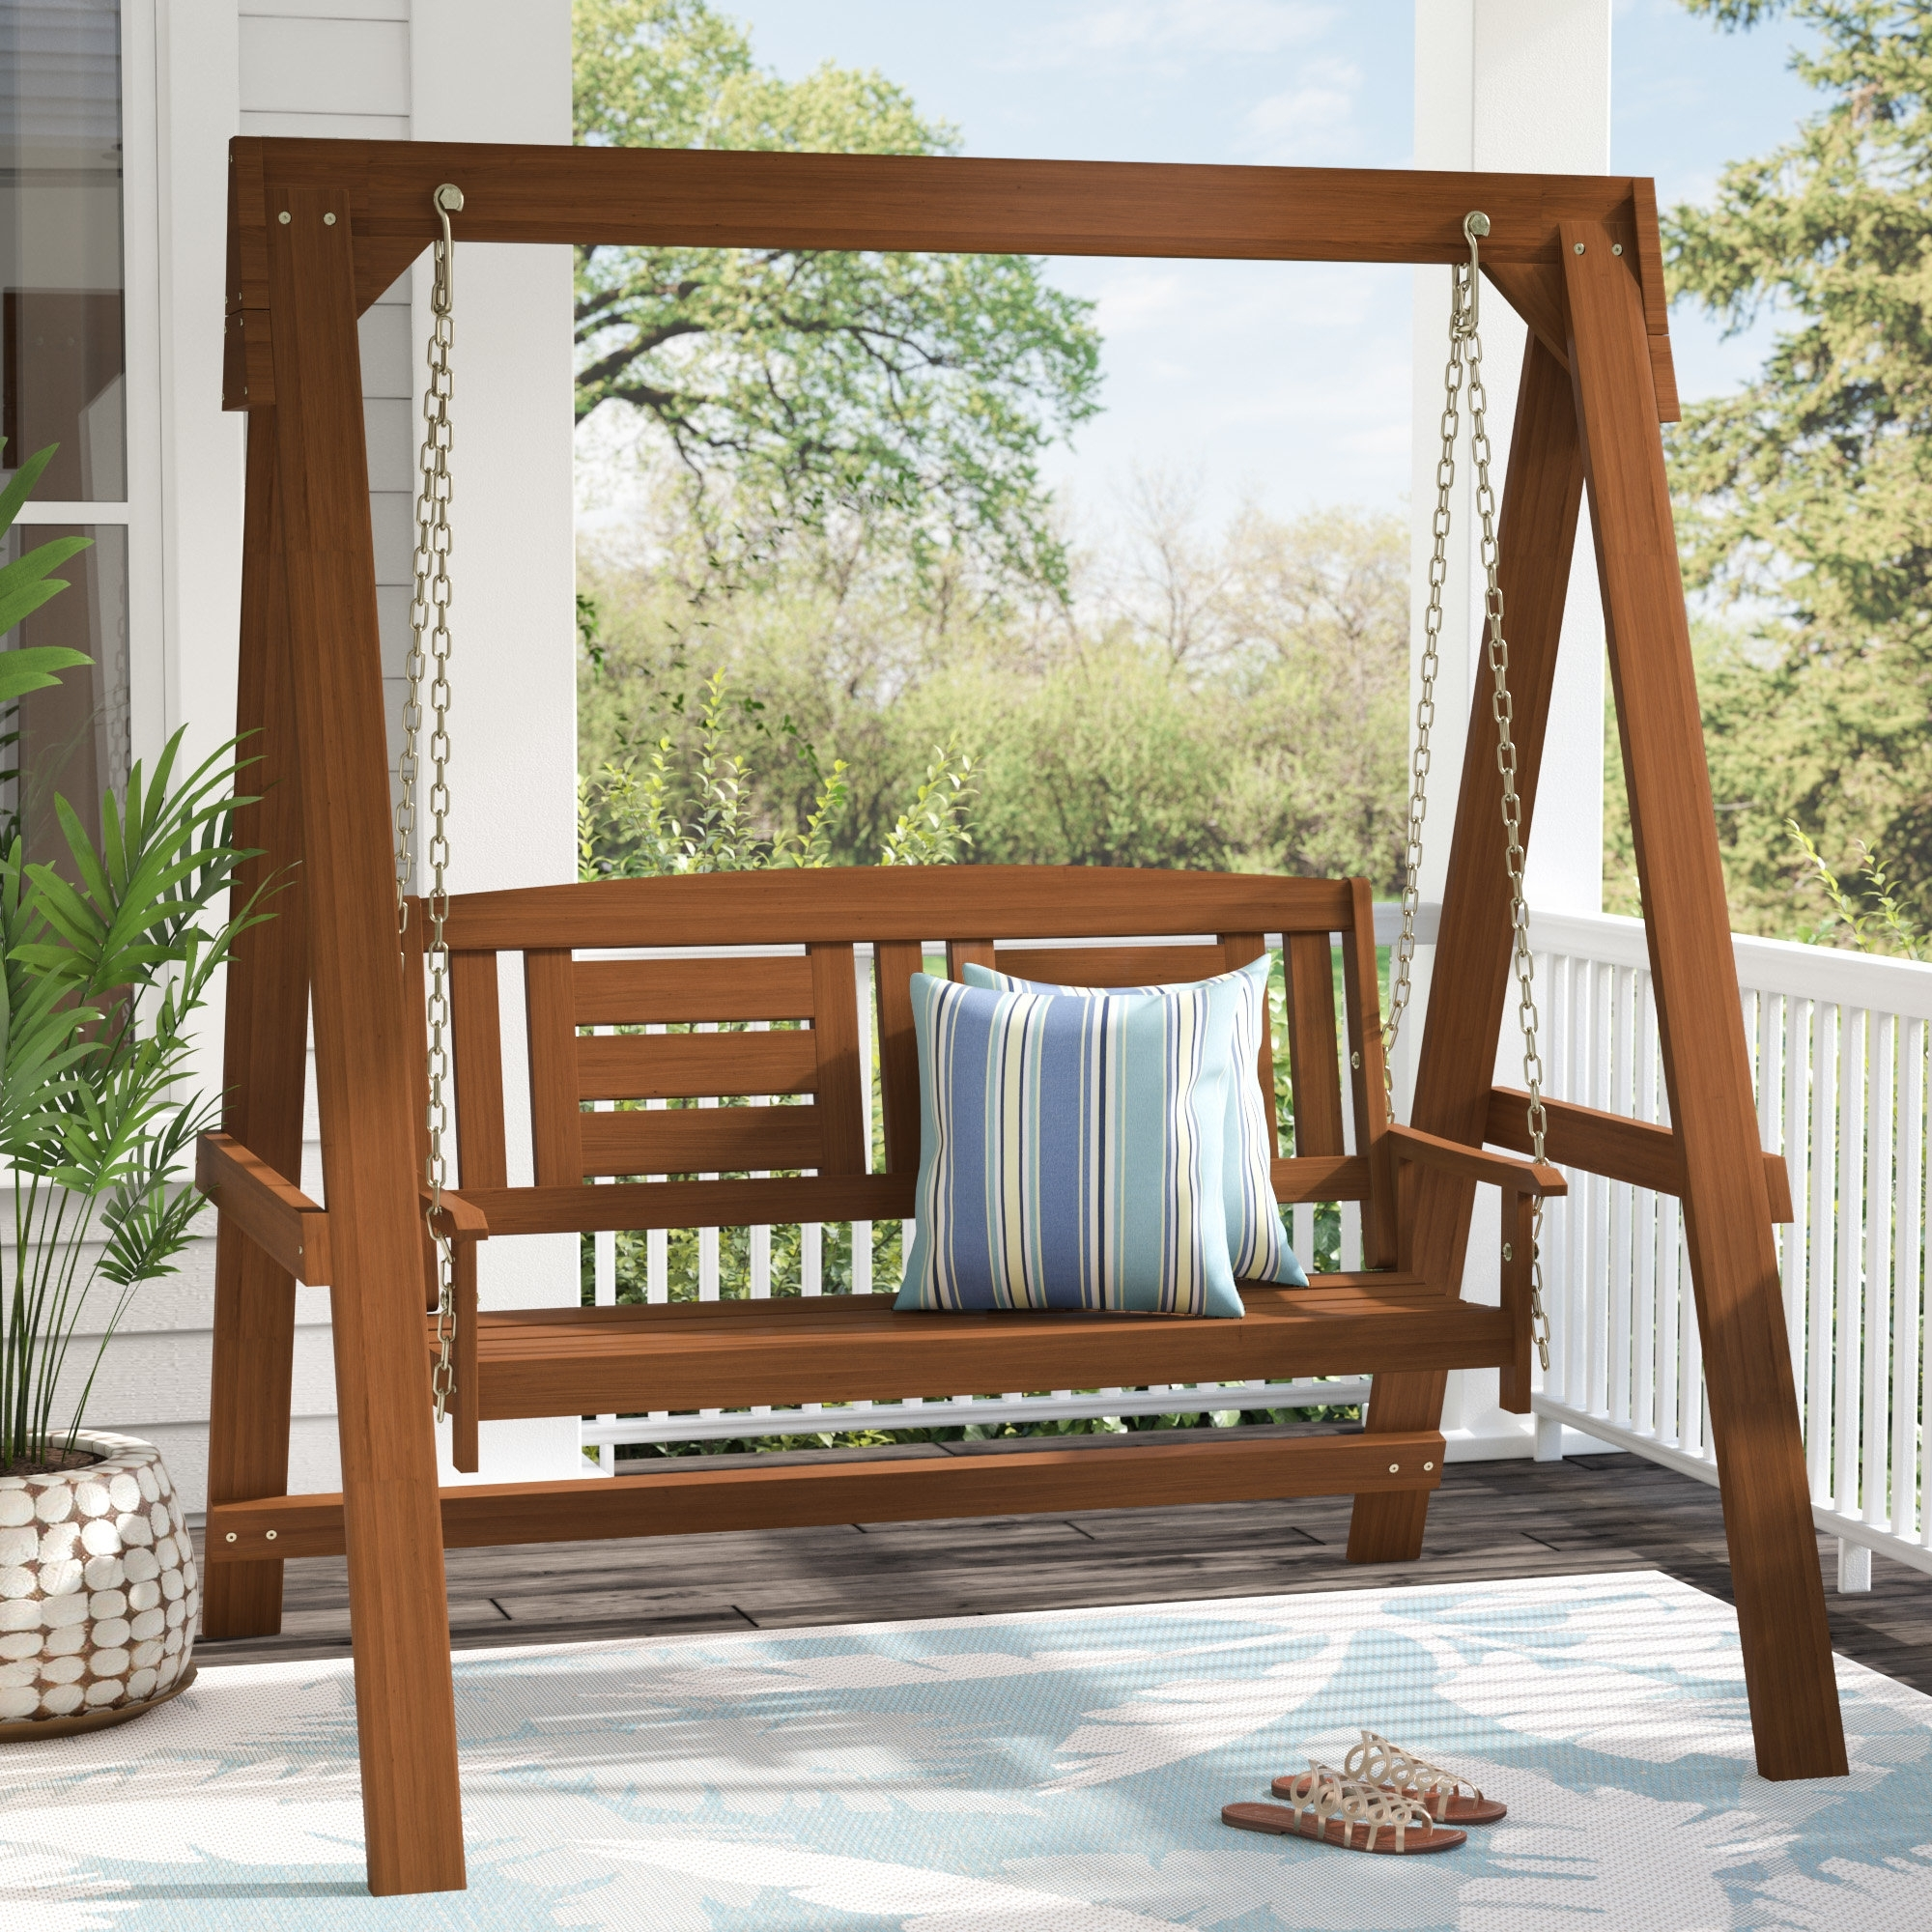 Super Strong Durable Free Standing Porch Swing  U2014 Randolph